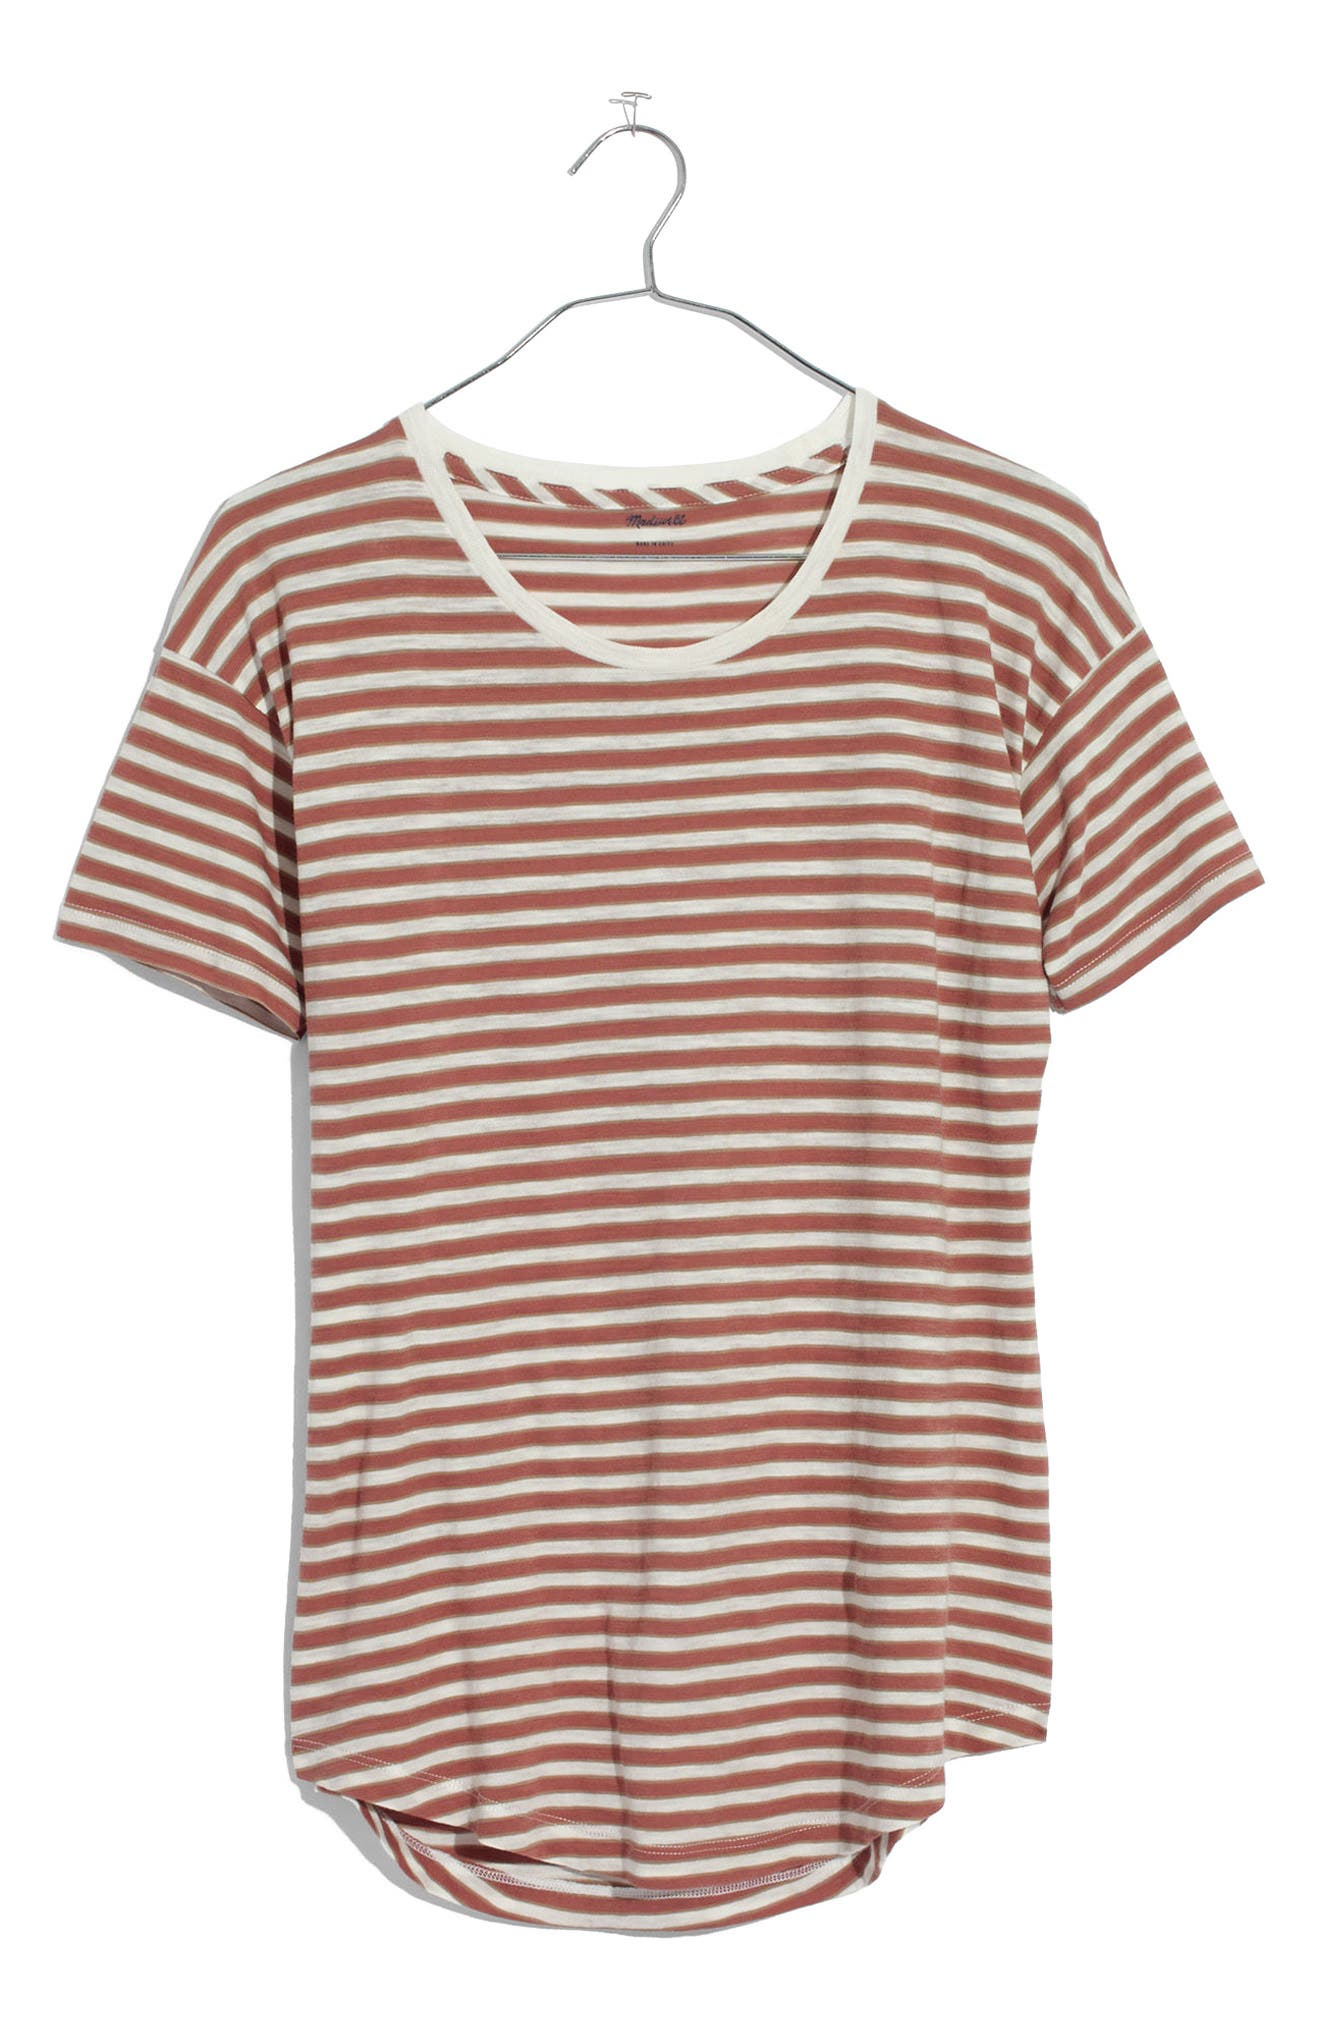 Alternate Image 1 Selected - Madewell Stripe Whisper Cotton Crewneck Tee